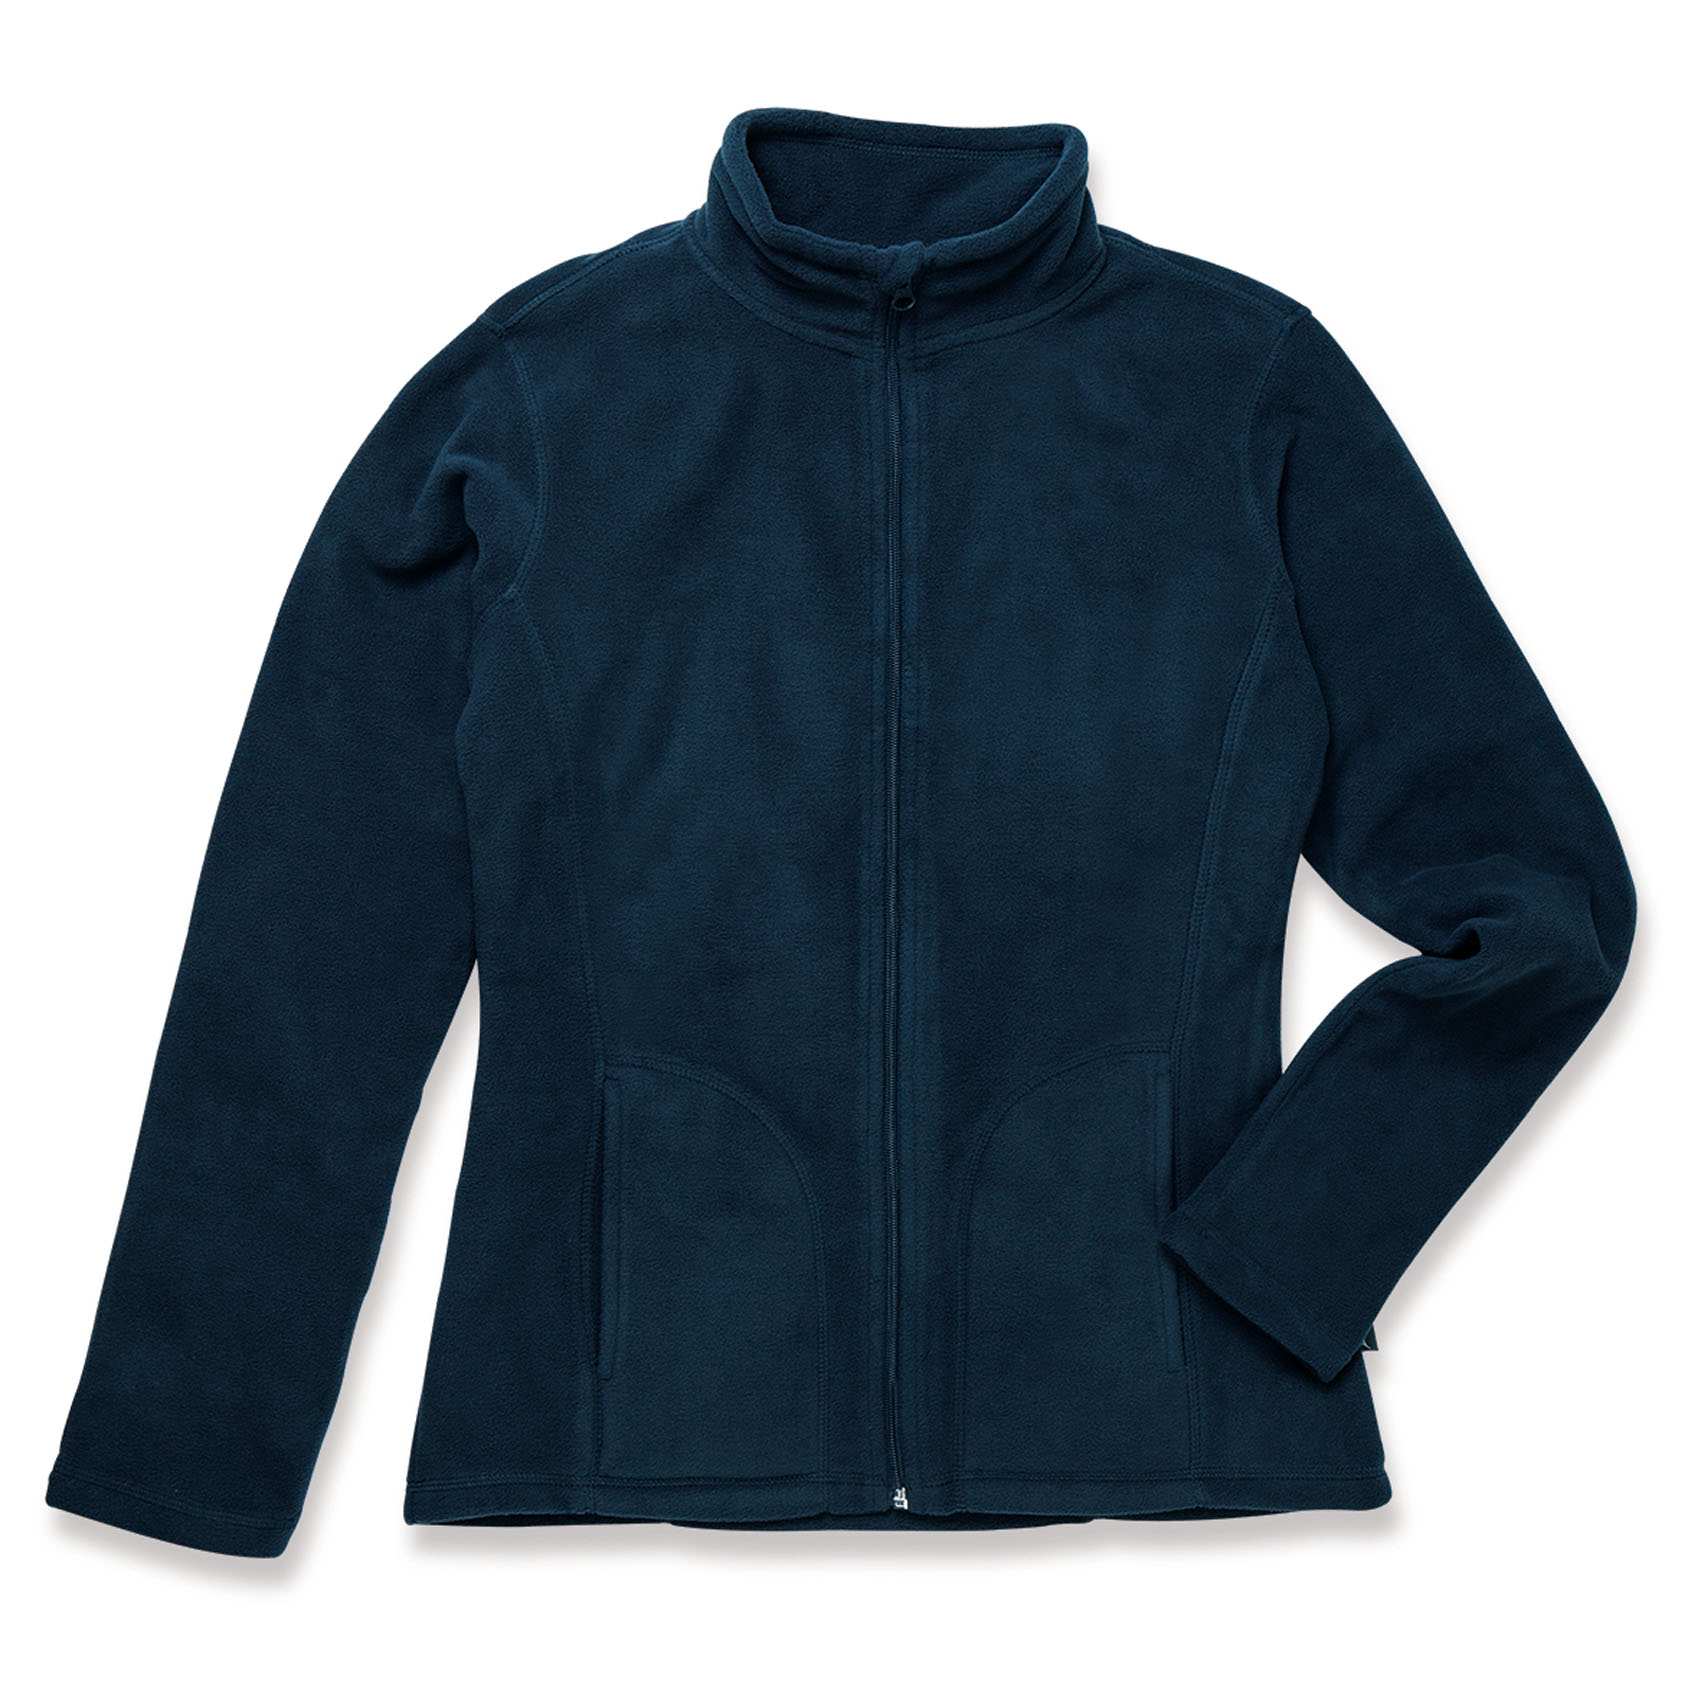 Stedman Polar Fleece Cardigan Active for her